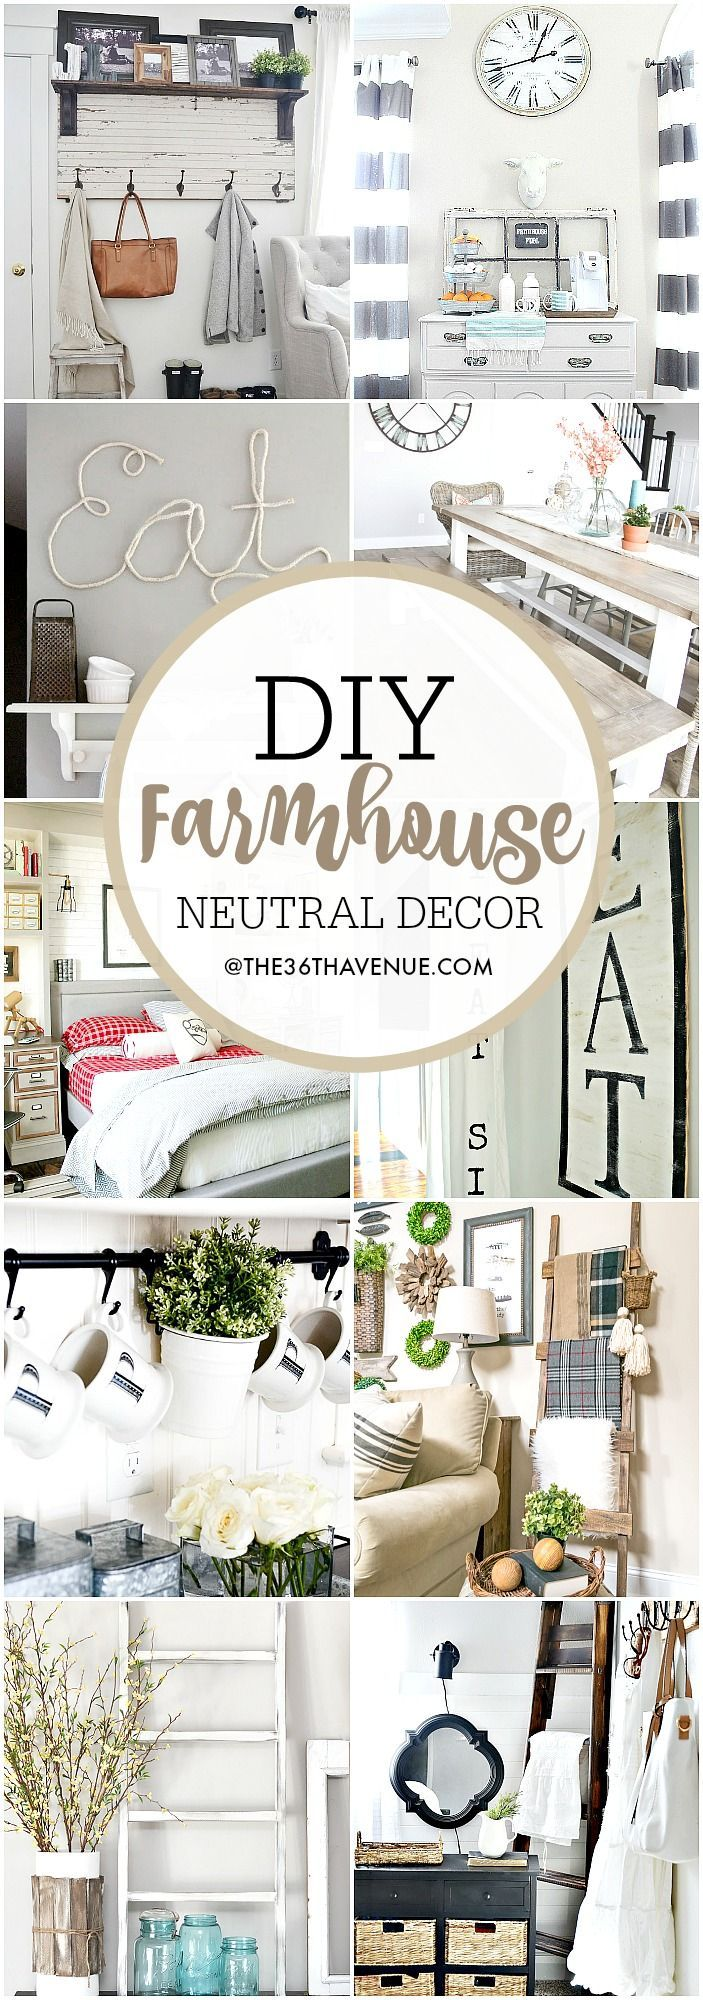 Farmhouse DIY Decor Ideas – Over 100 DIY Farmhouse Home Decor Ideas that are perfect to give your own home the charming and